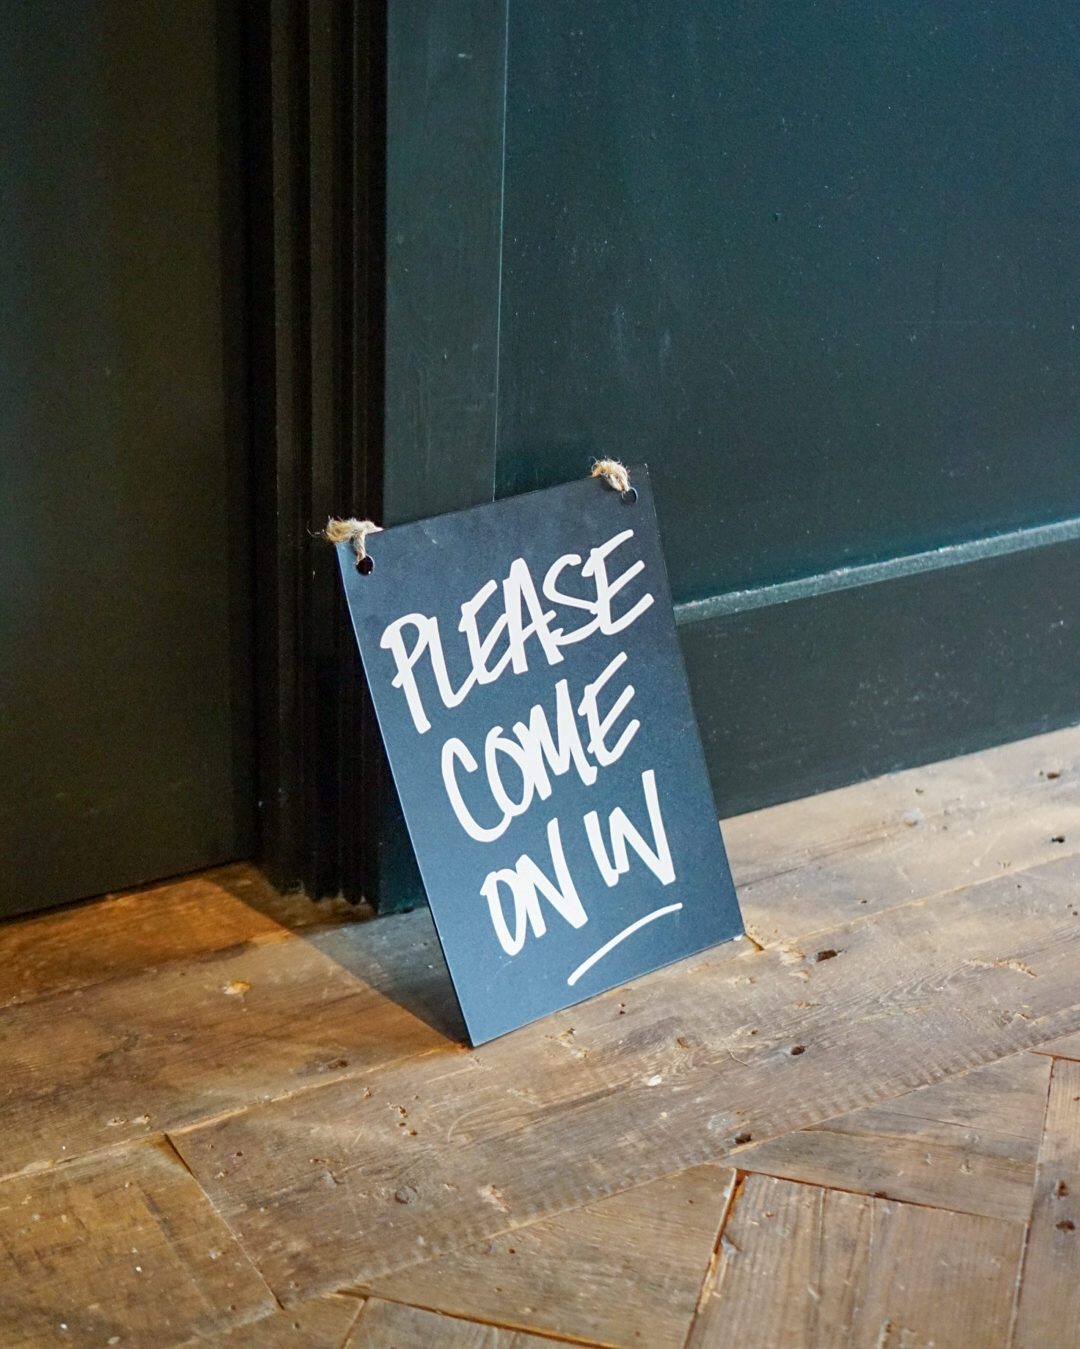 Lush Spa Renaissance treatment sign outside door. Black wooden board with white writing saying 'please come on in'